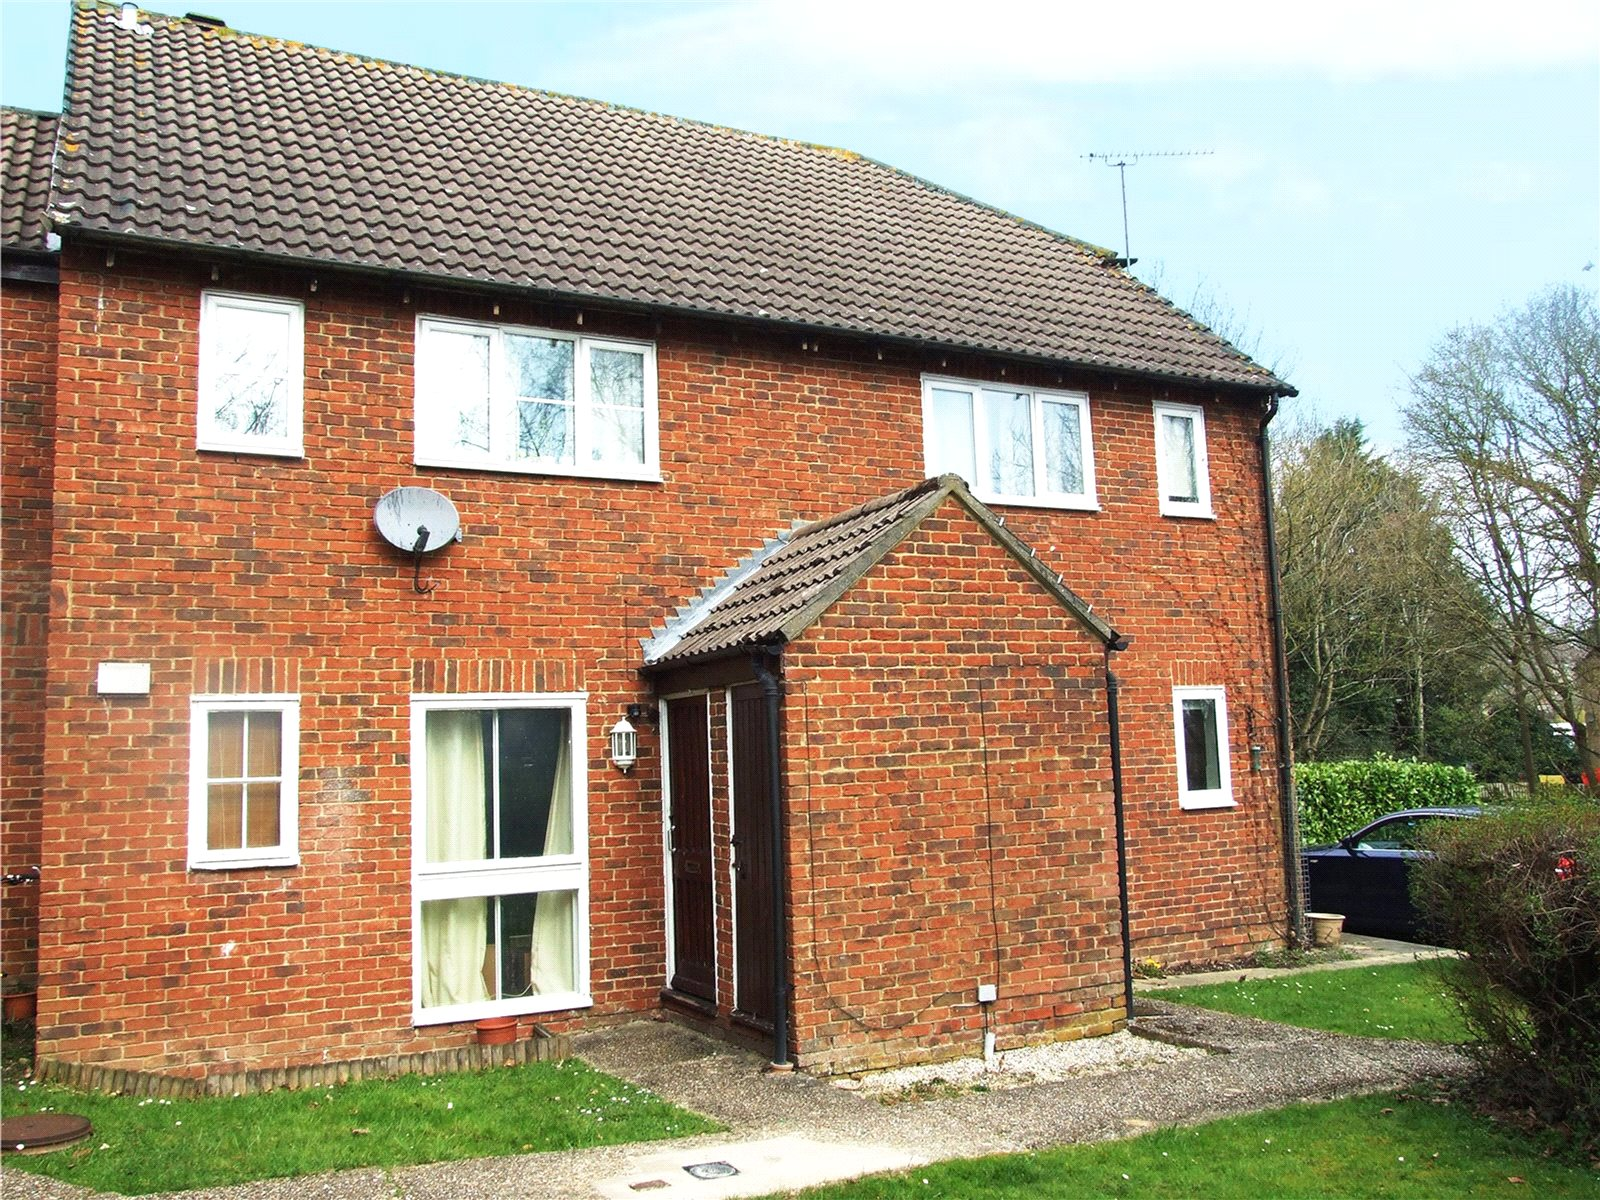 1 Bedroom Maisonette Flat for sale in Watersfield Close, Lower Earley, Reading, Berkshire, RG6